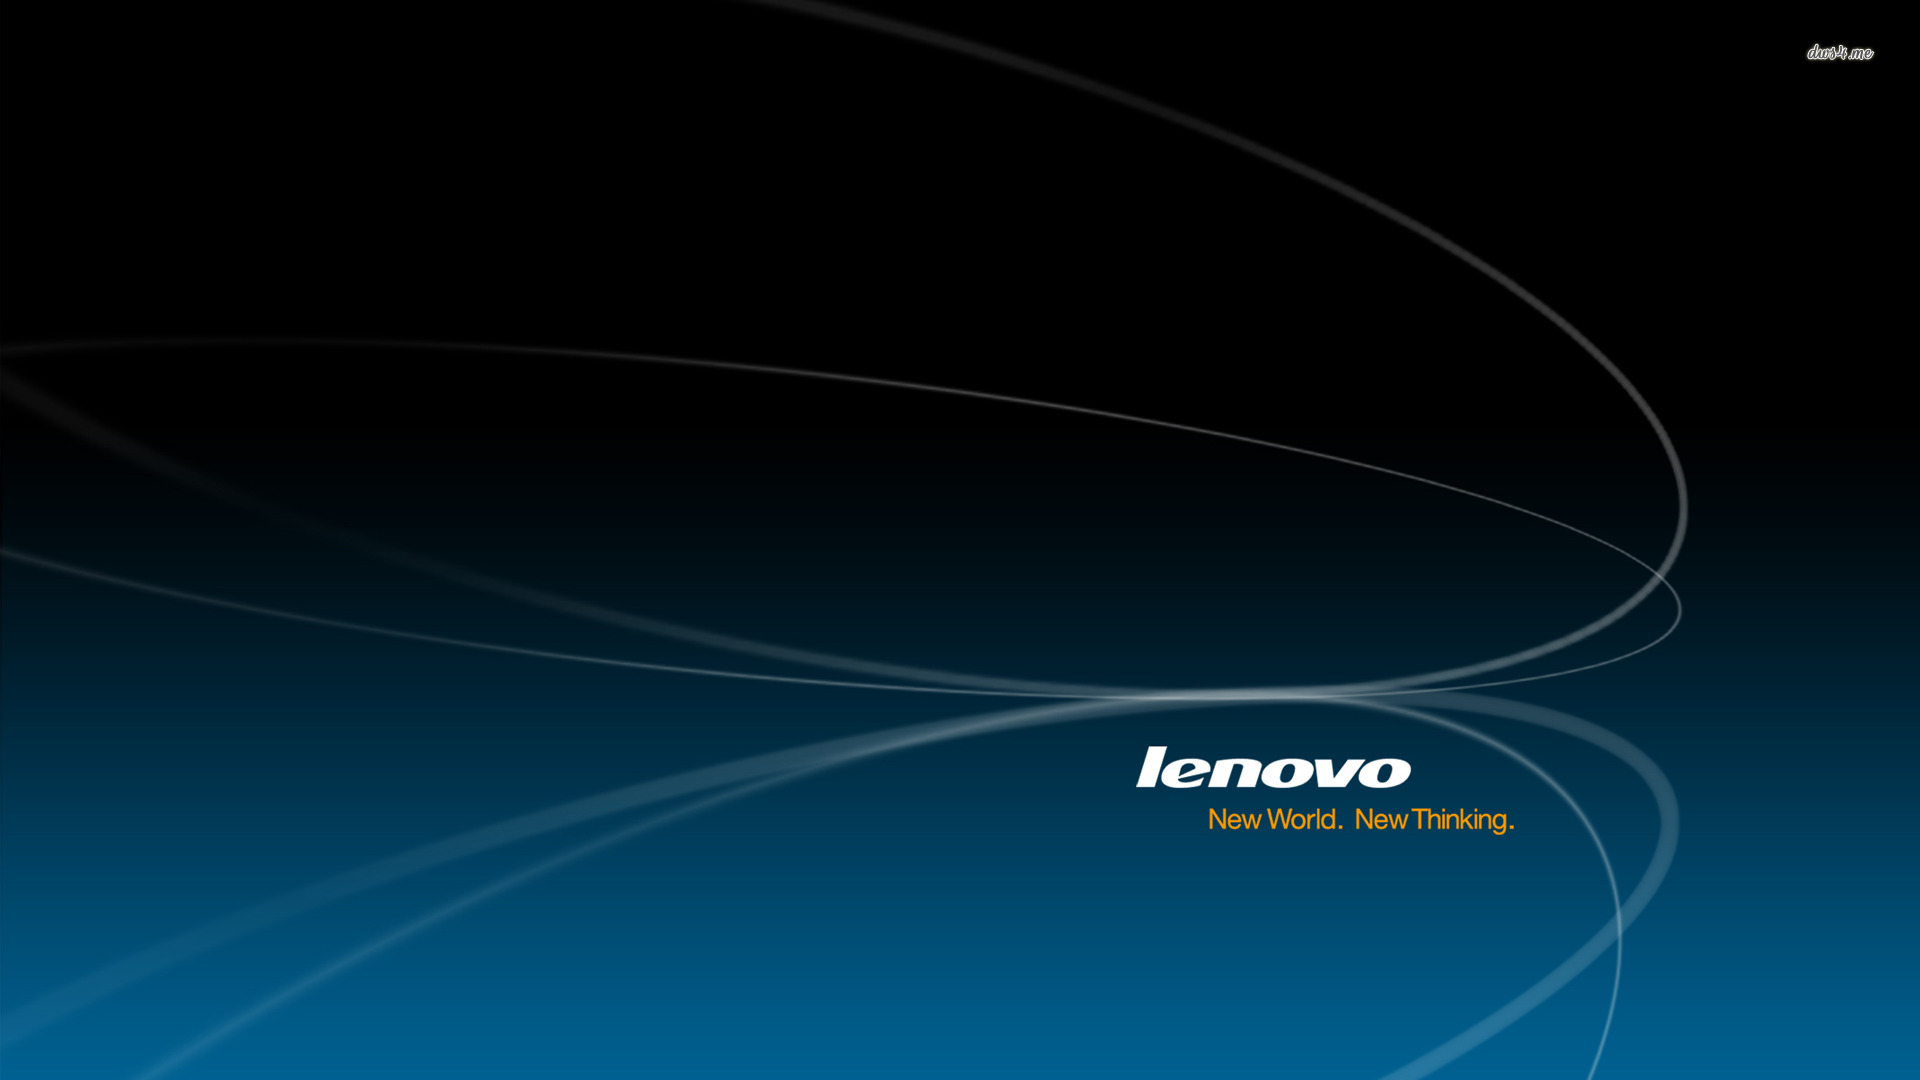 Lenovo Wallpaper 1366X768 1920x1080 1289 ...